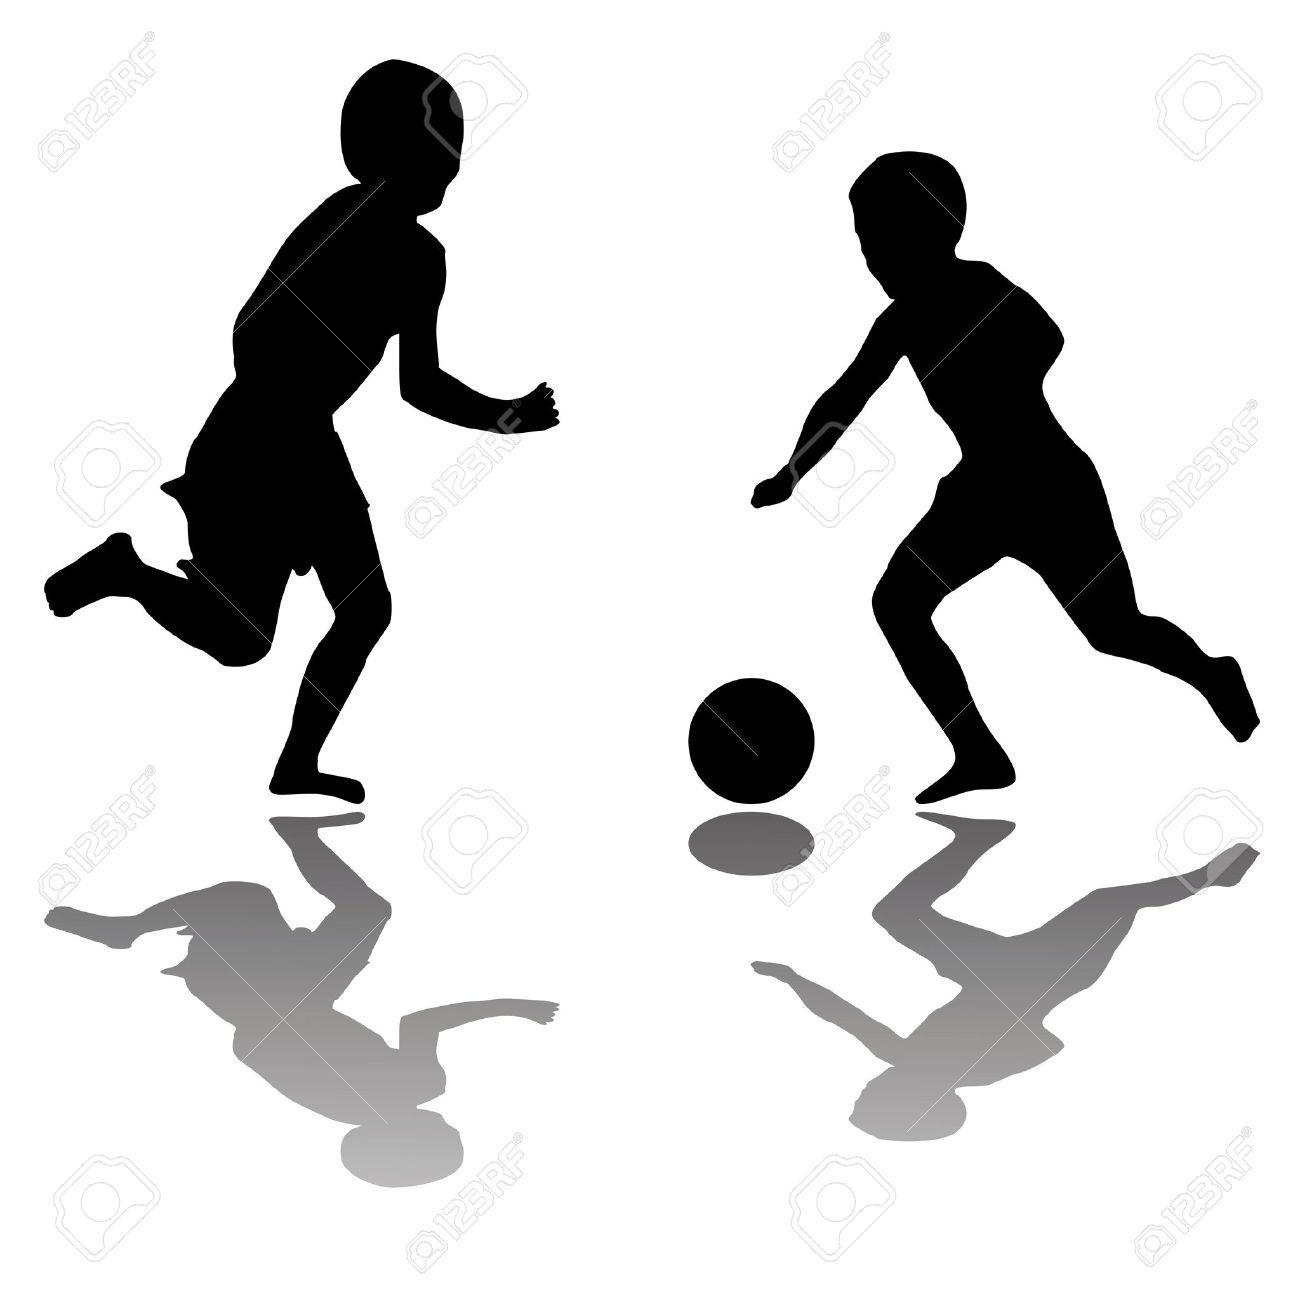 Boy soccer player clipart black and white banner black and white download Kids Playing Football Clipart Black And White - ClipartXtras | Gifs ... banner black and white download